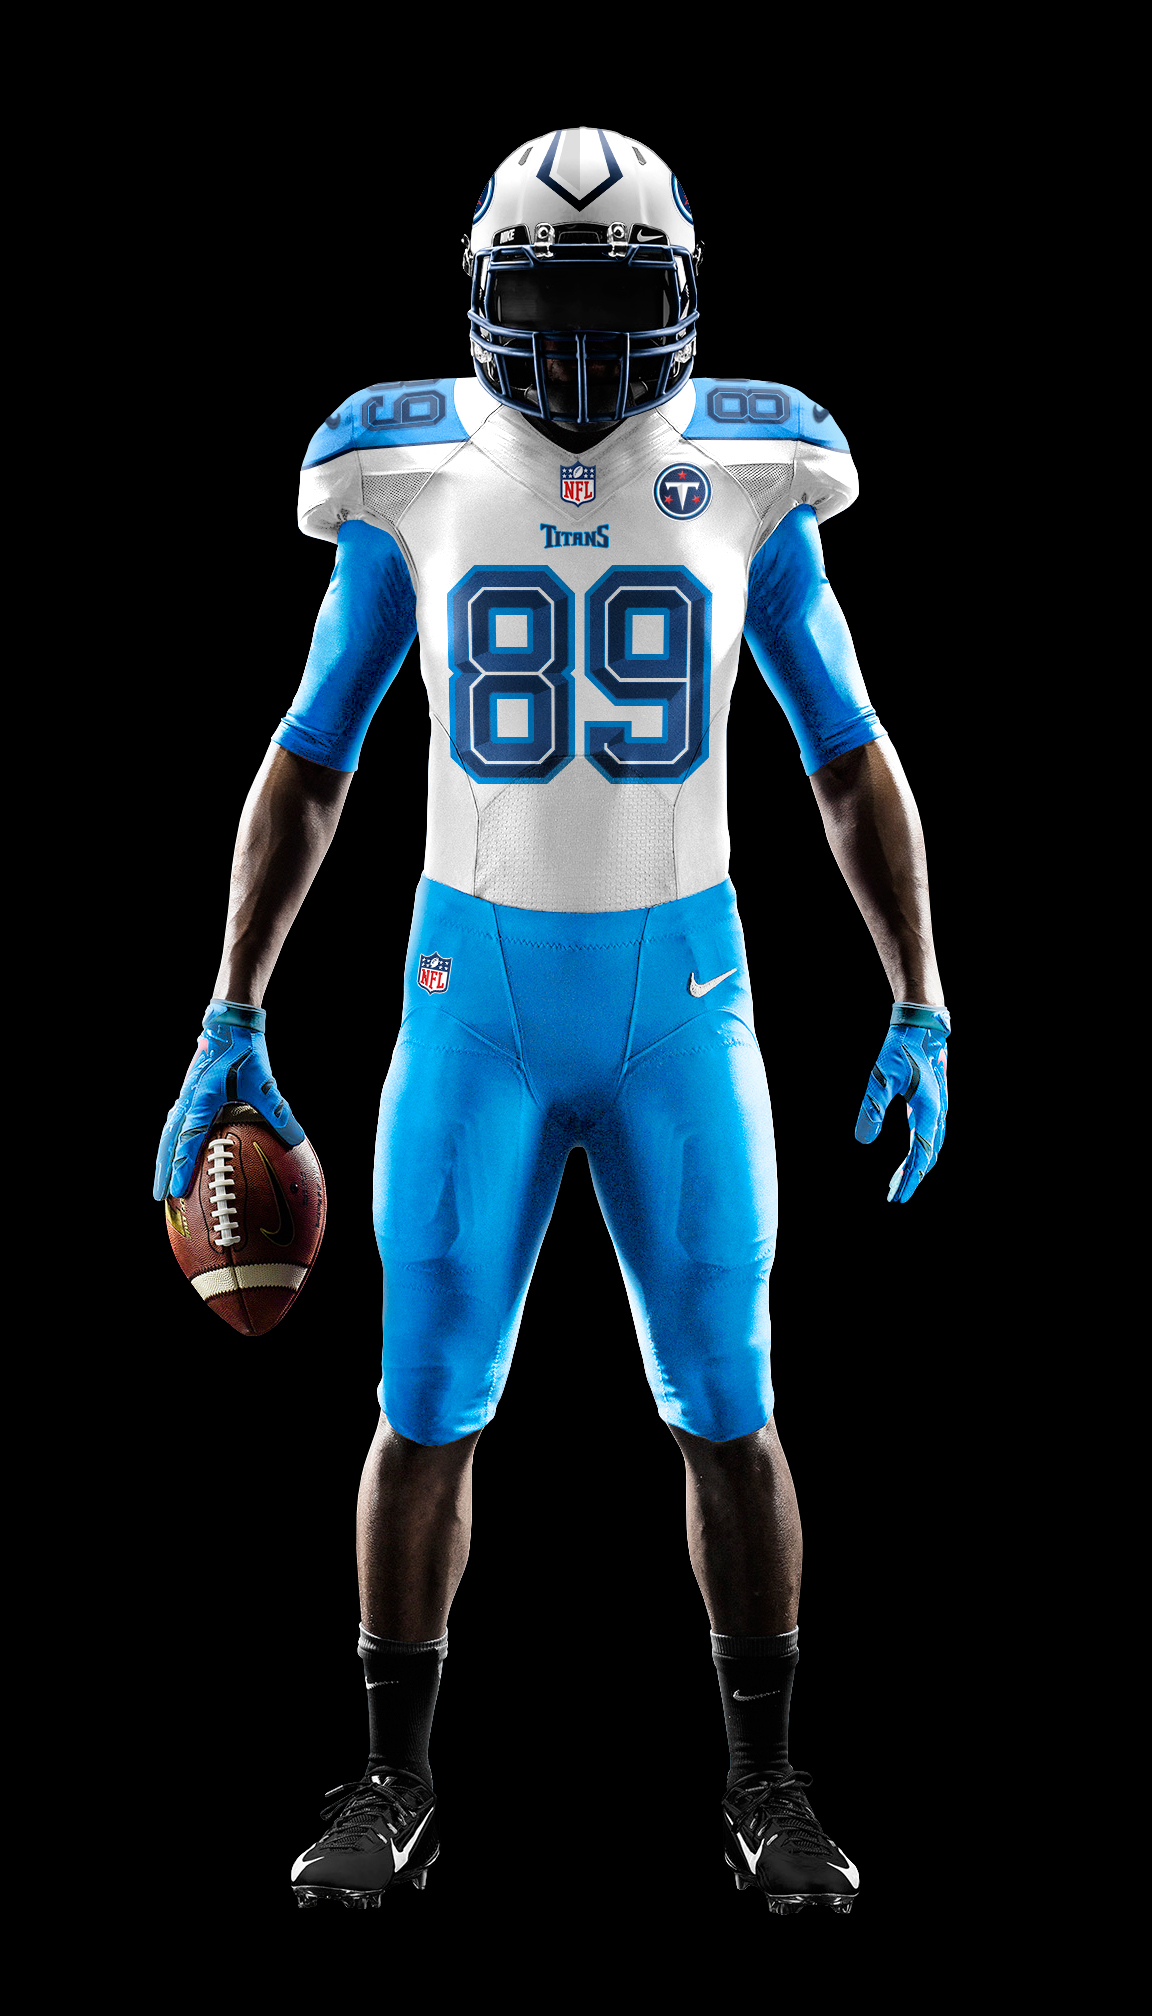 low priced 73594 63a41 Tennessee Titans Uniform Concept on Behance